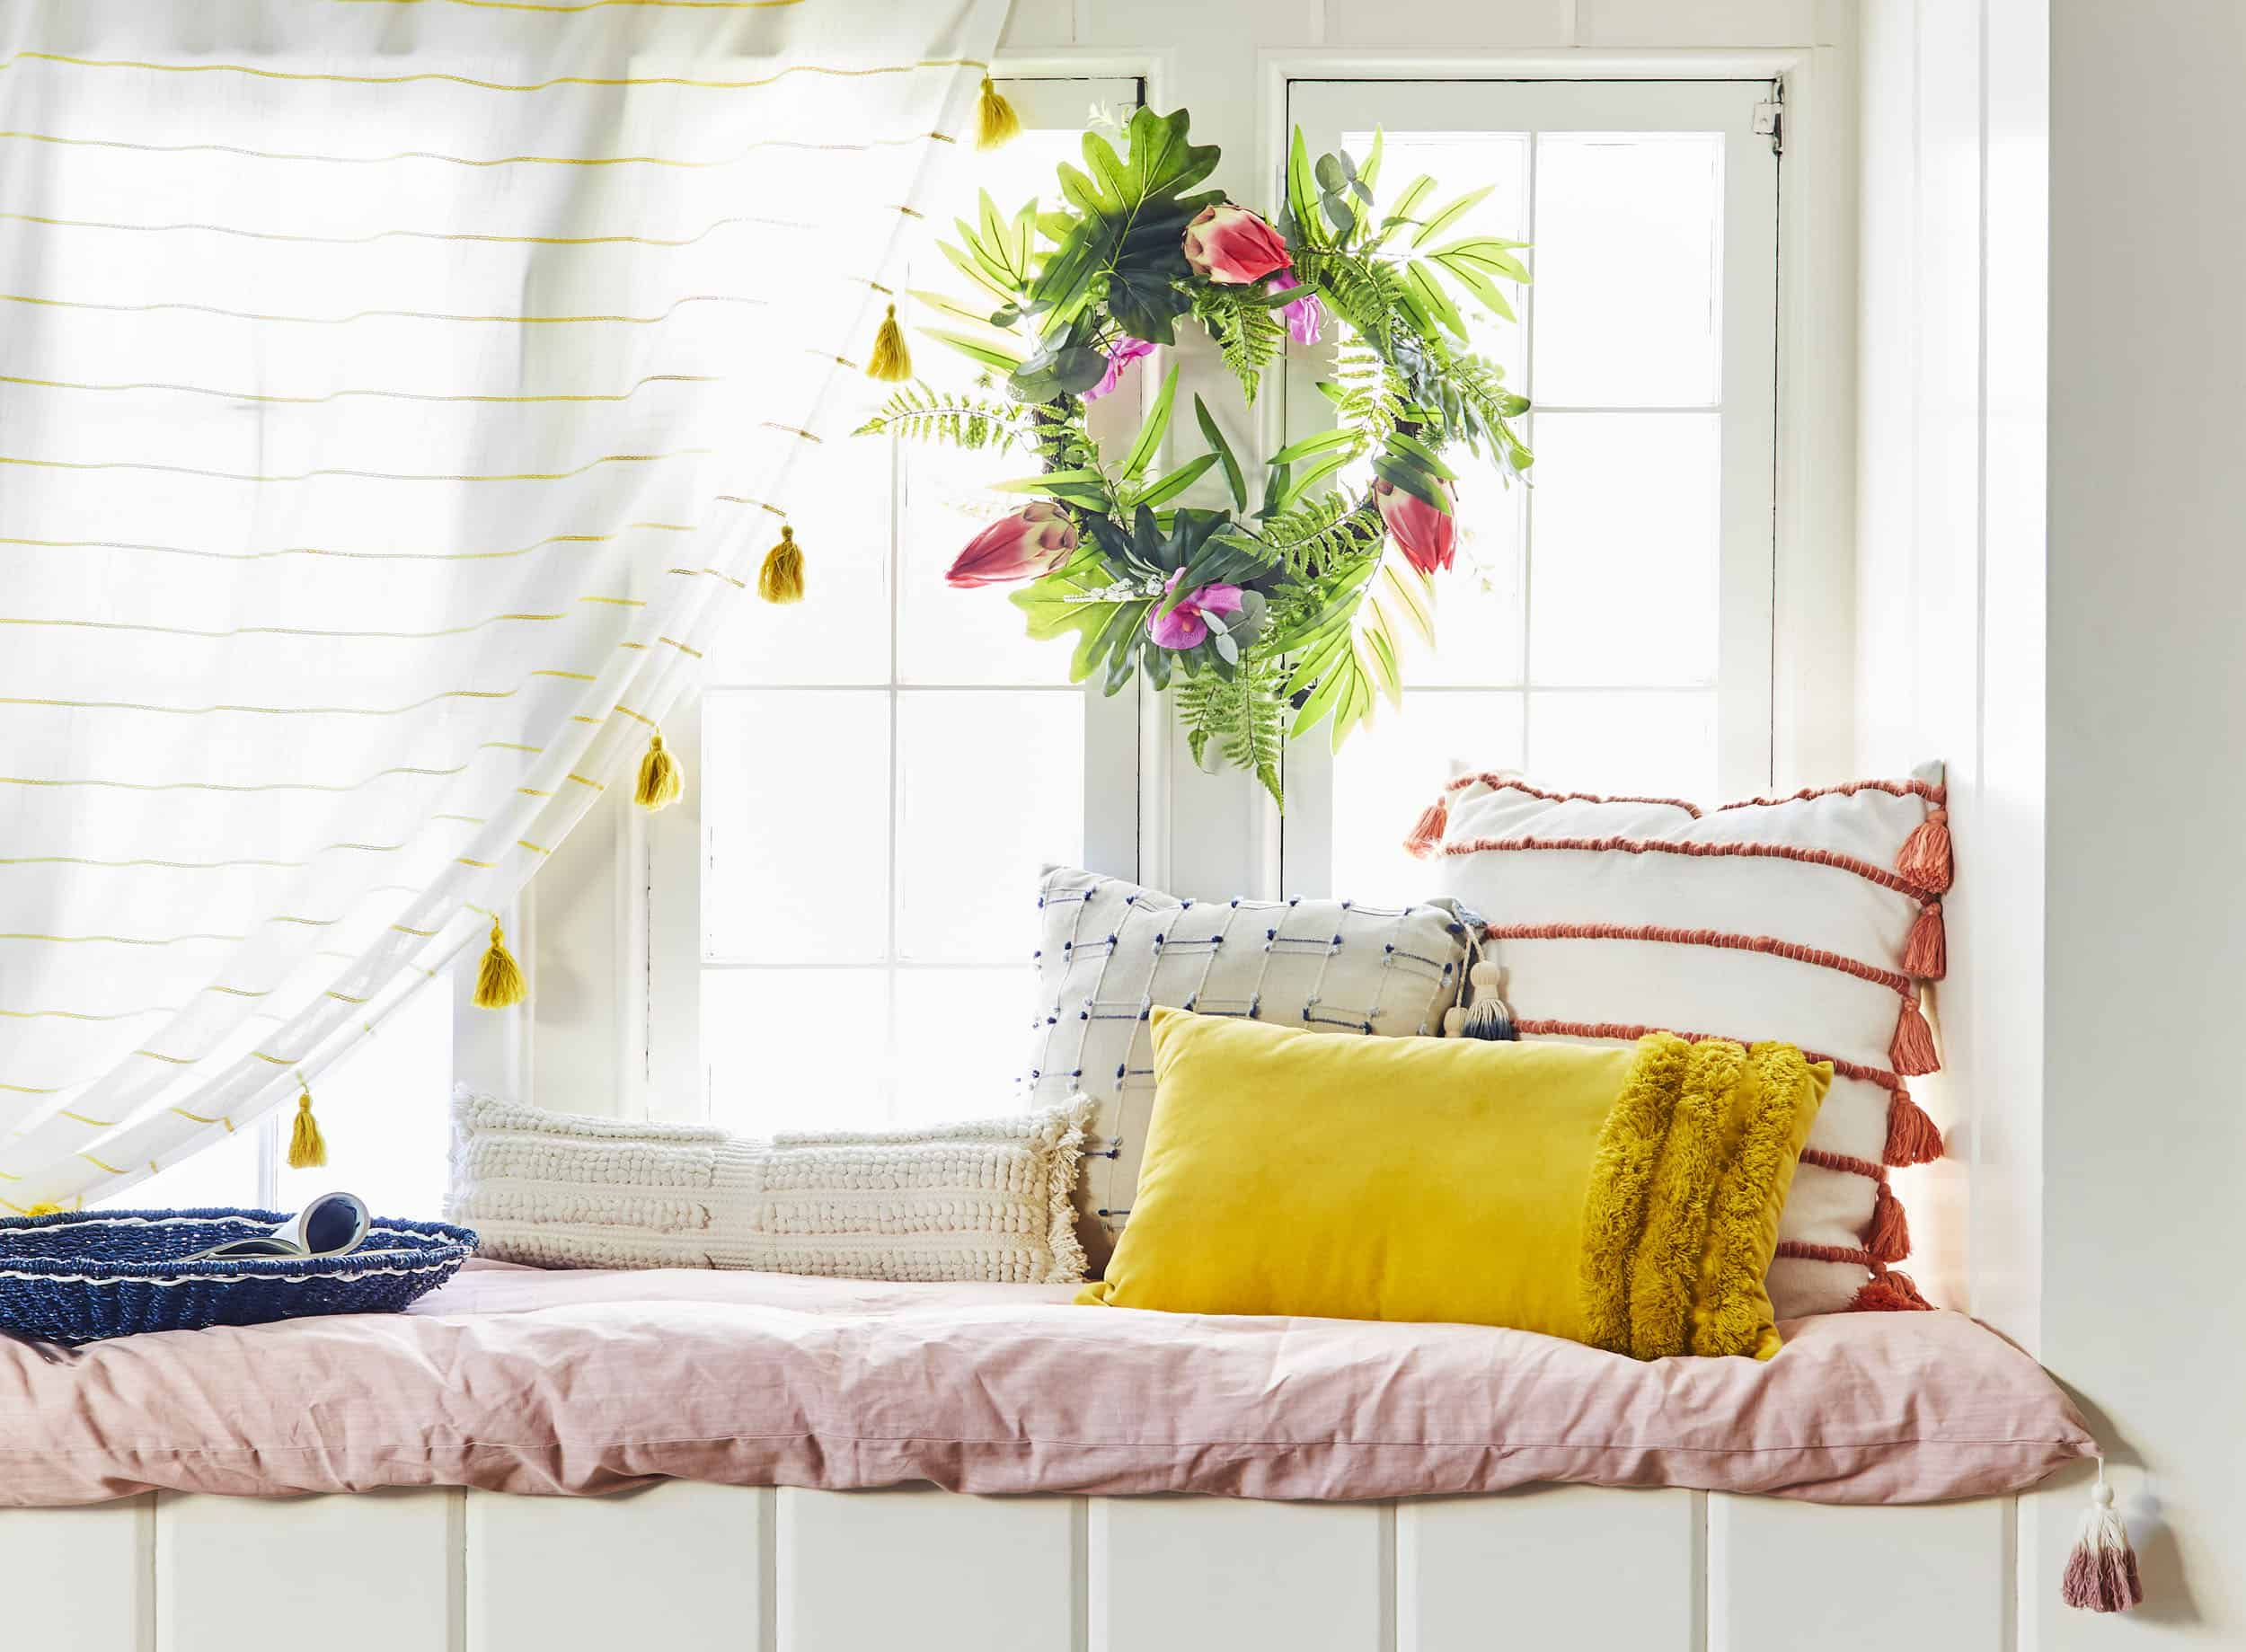 Target Opalhouse Spring 2019 Emily Henderson Lores30